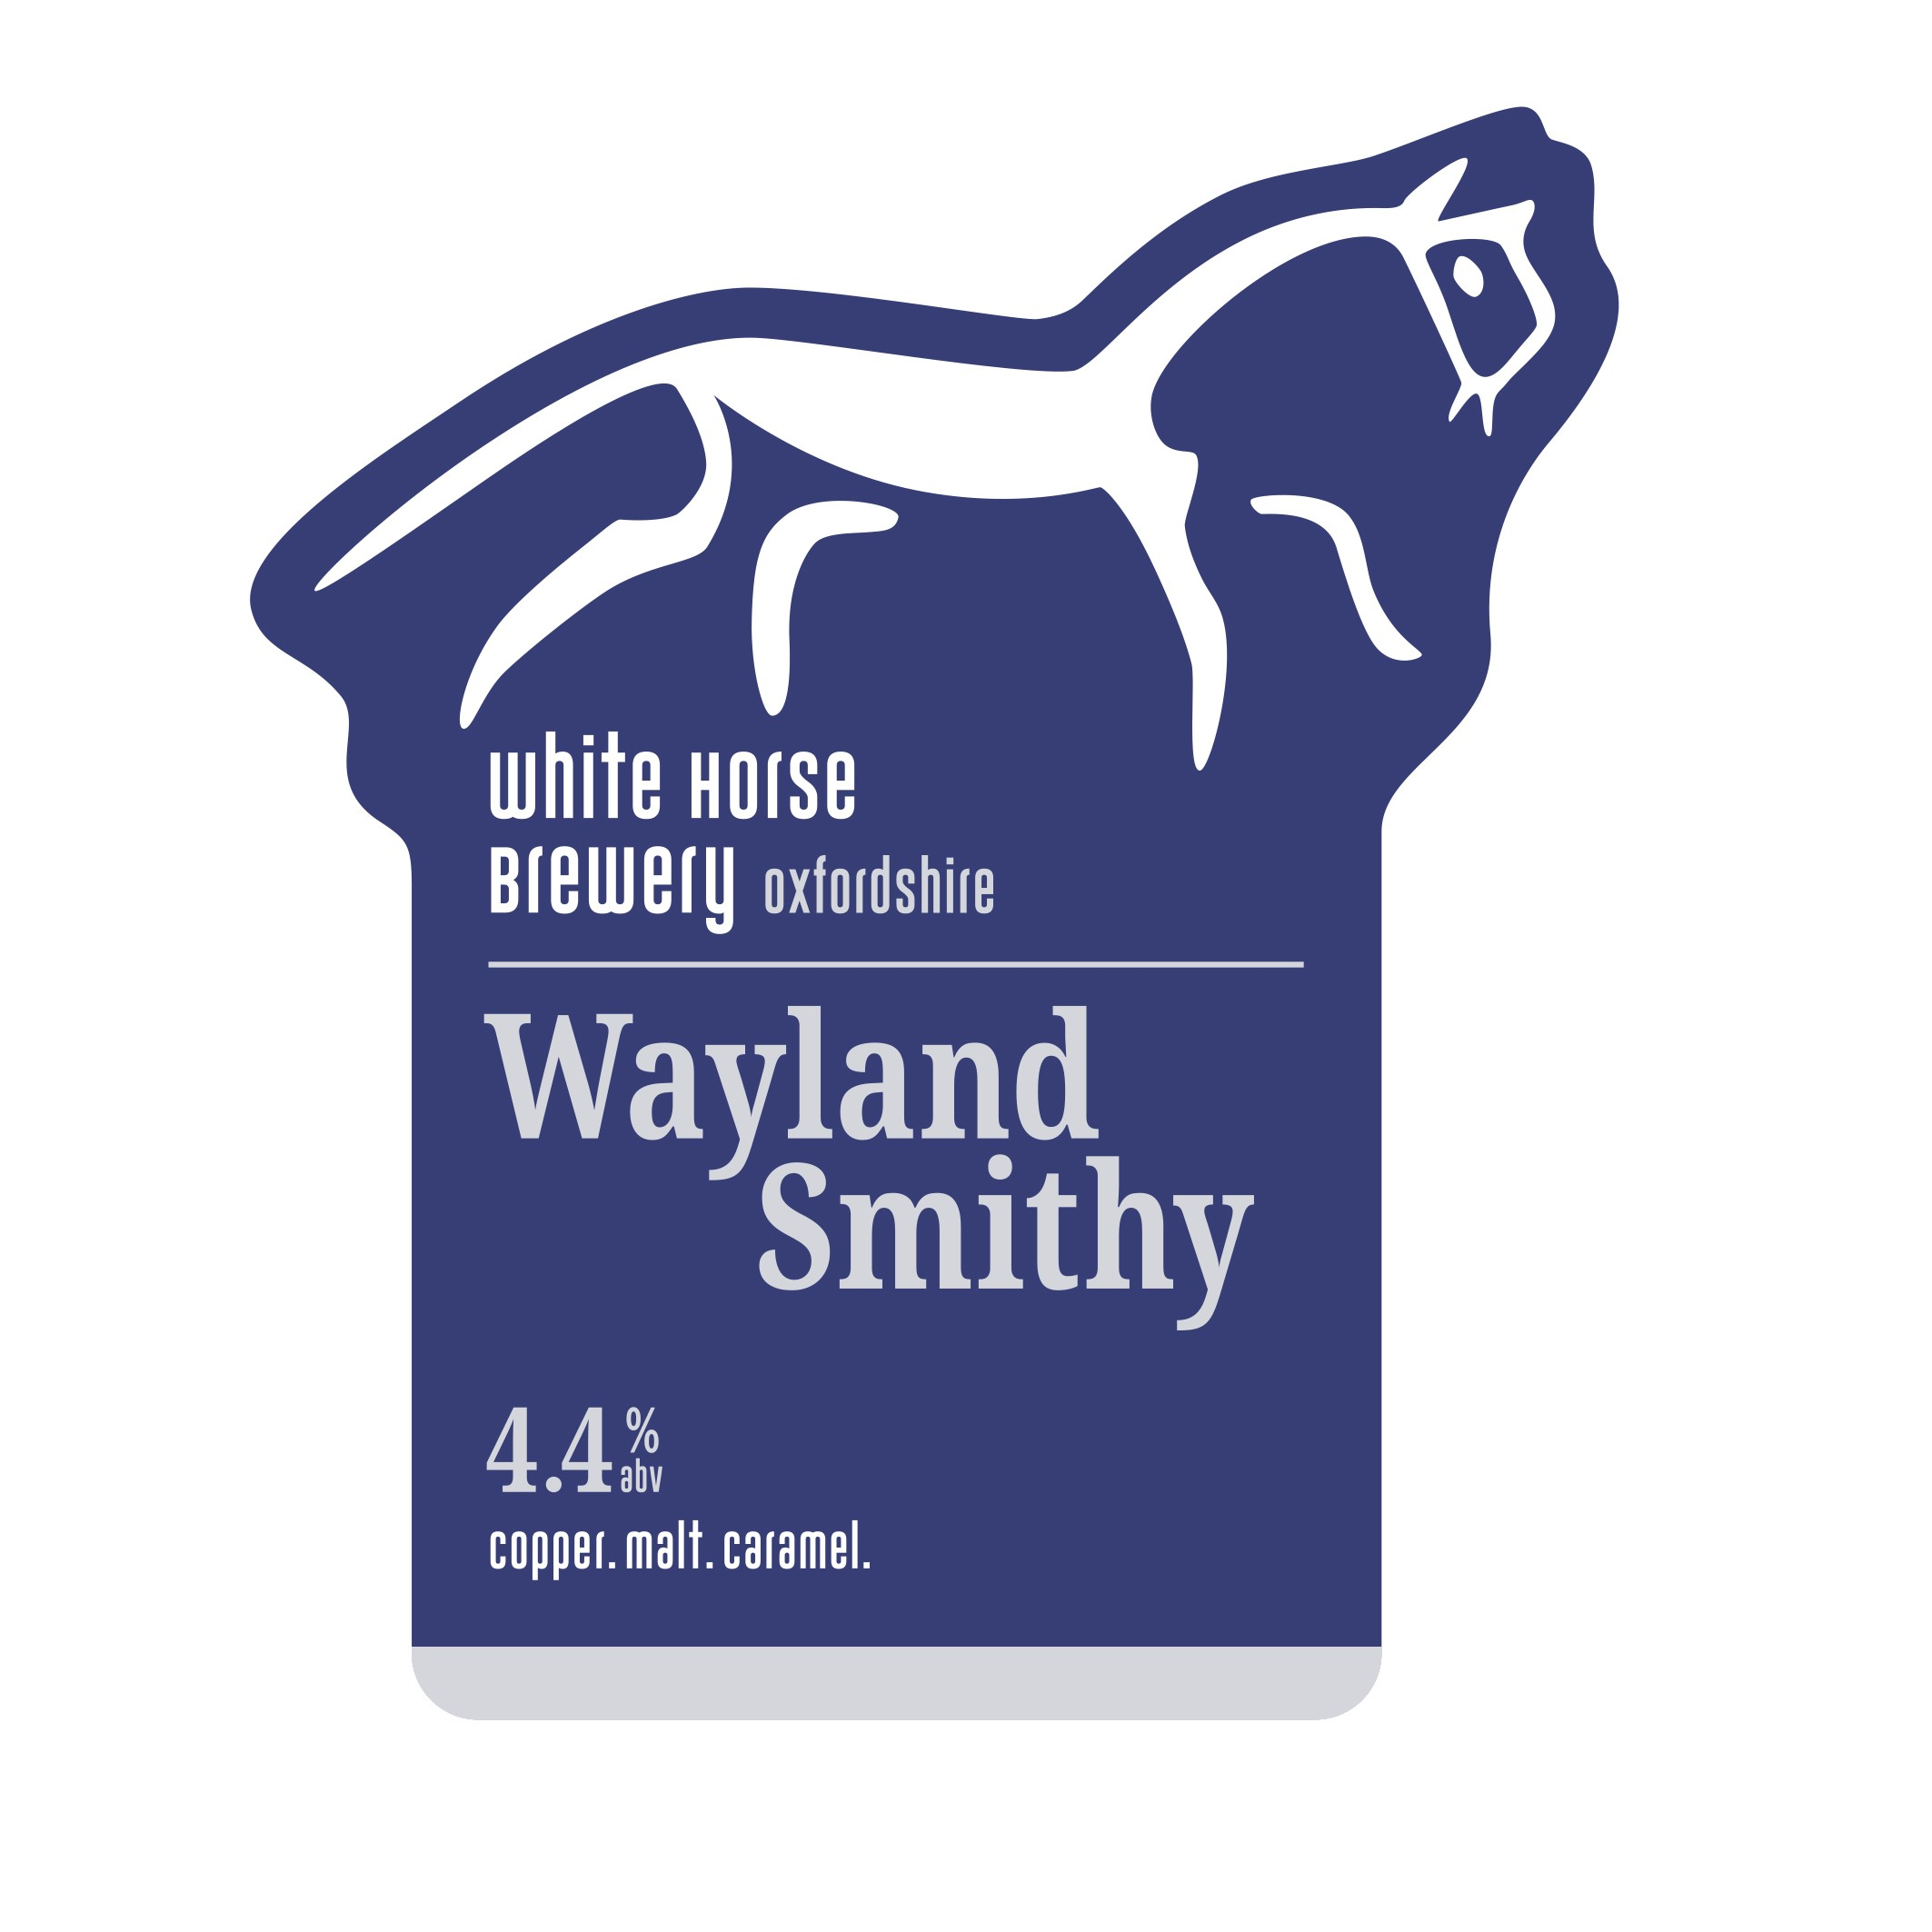 White Horse Wayland Smithy 9 Gallons Copper 4.4%